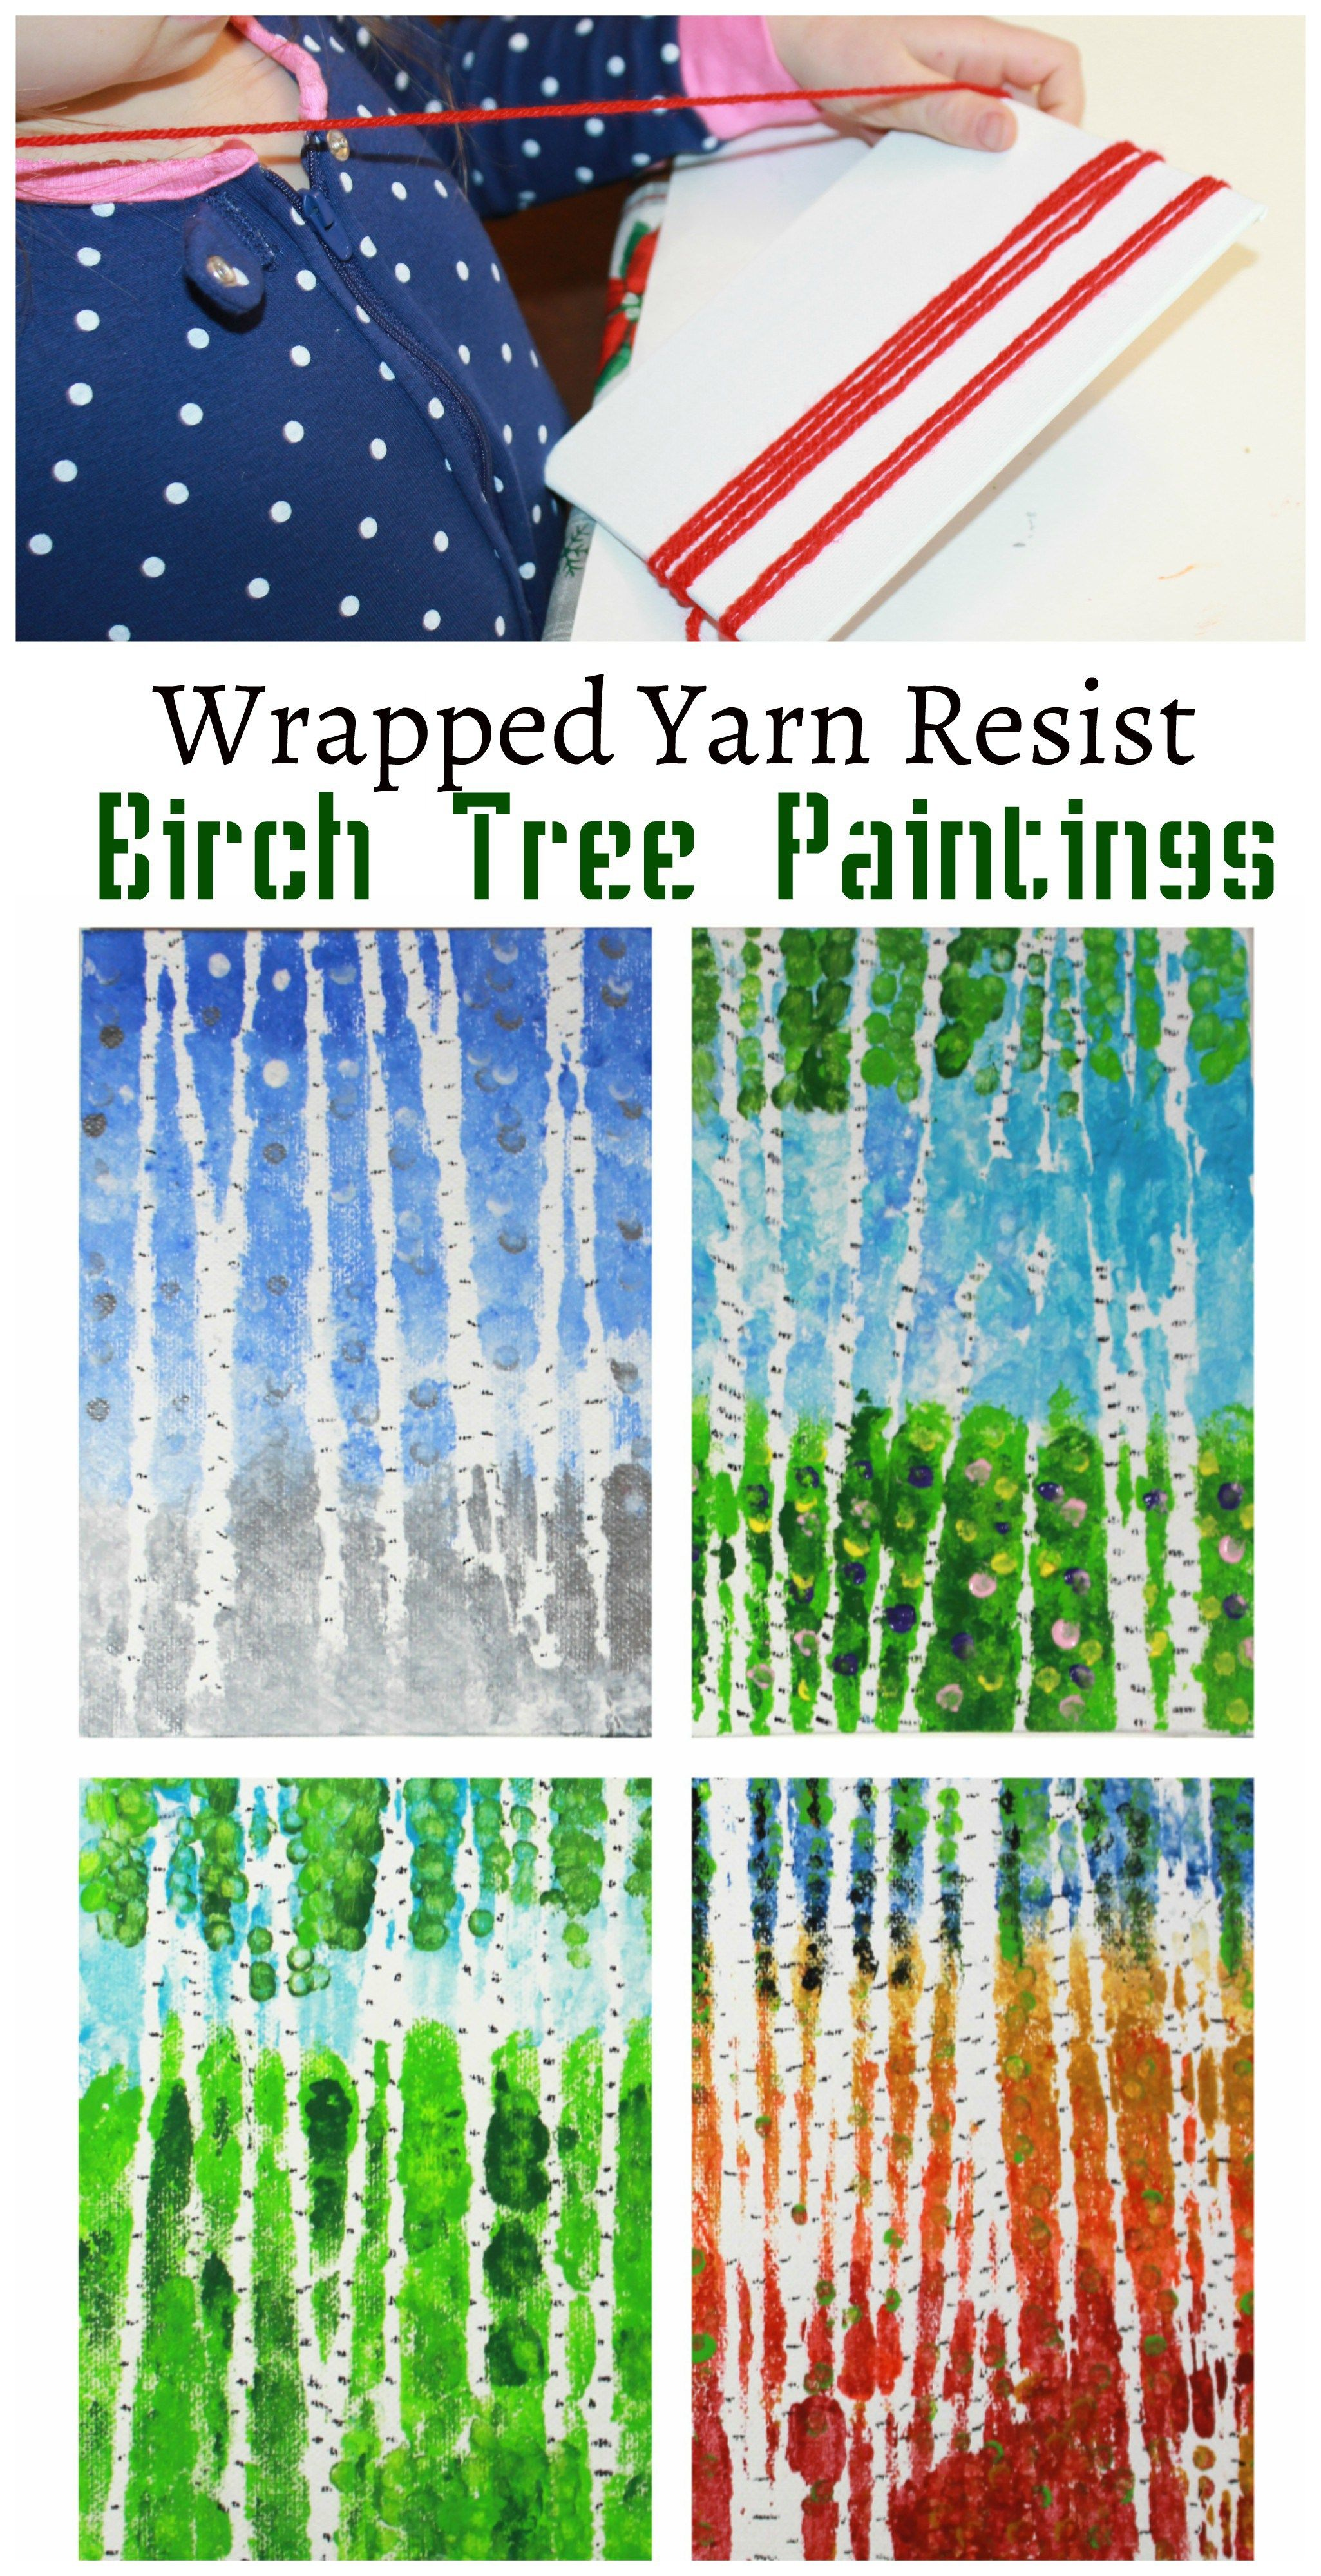 Wrapped Yarn Resist Birch Tree Paintings – The Pin